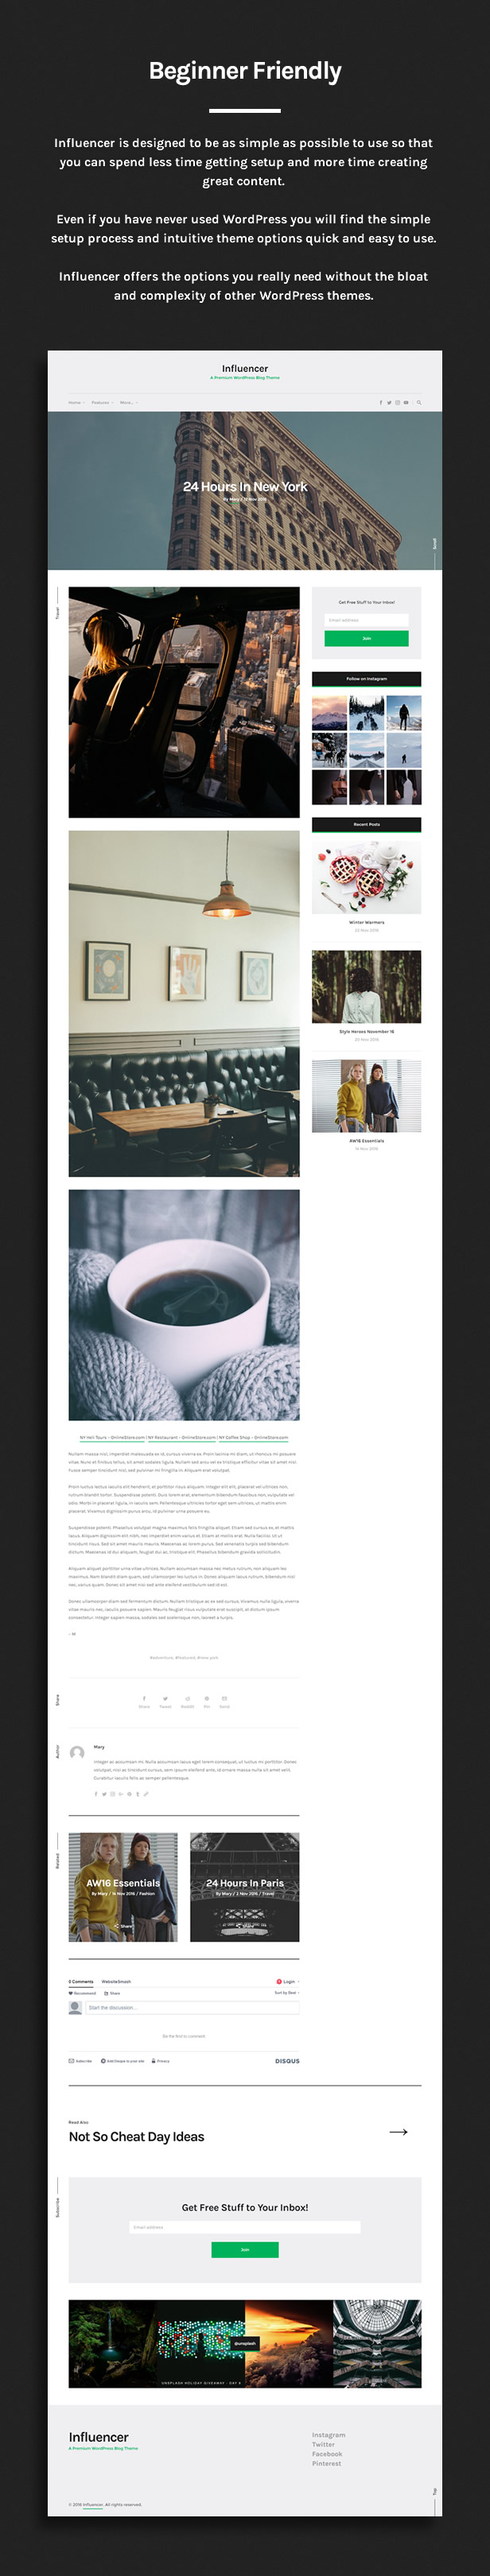 Influencer - Magazine & Blog WordPress Theme - 4